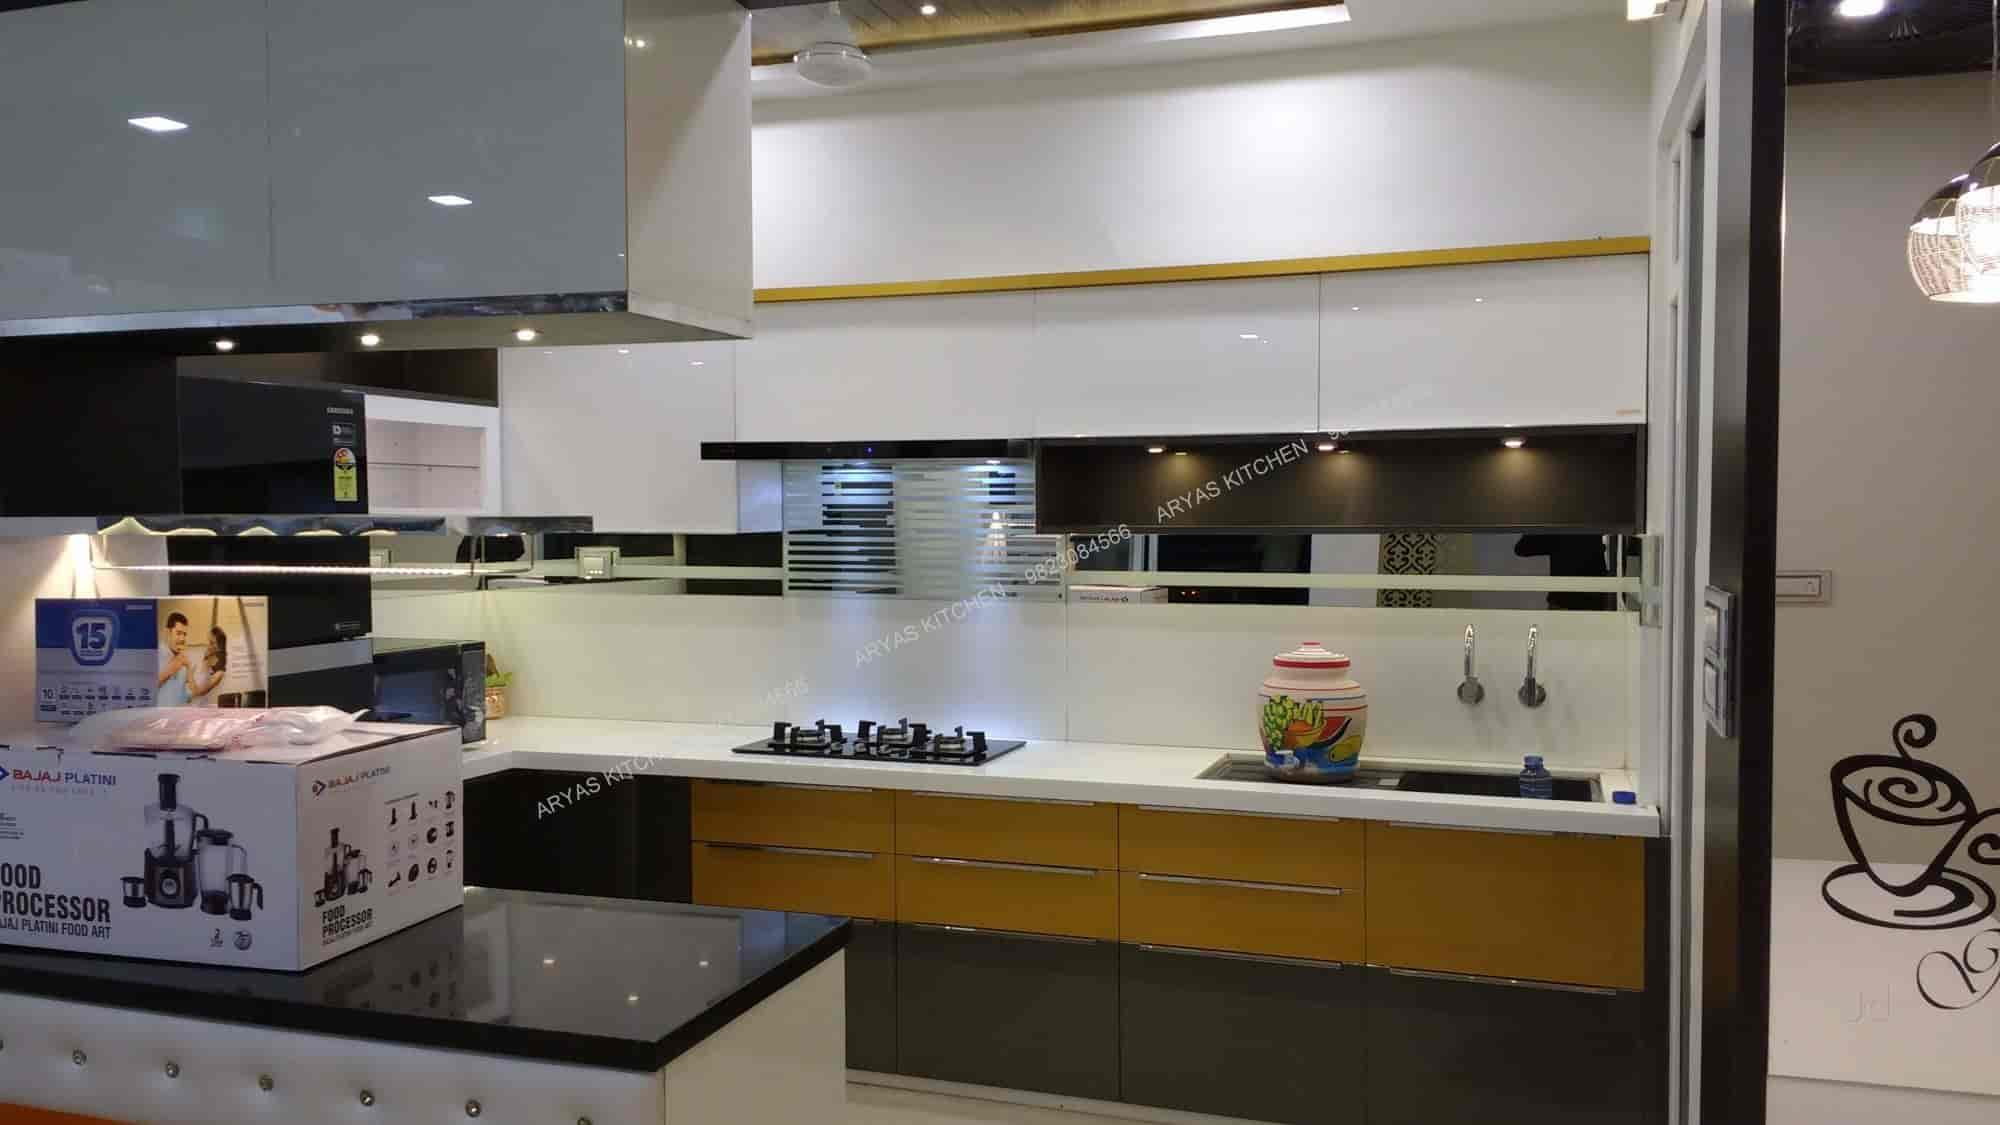 Aryas modular kitchen ayodhya nagar modular kitchen dealers in nagpur justdial